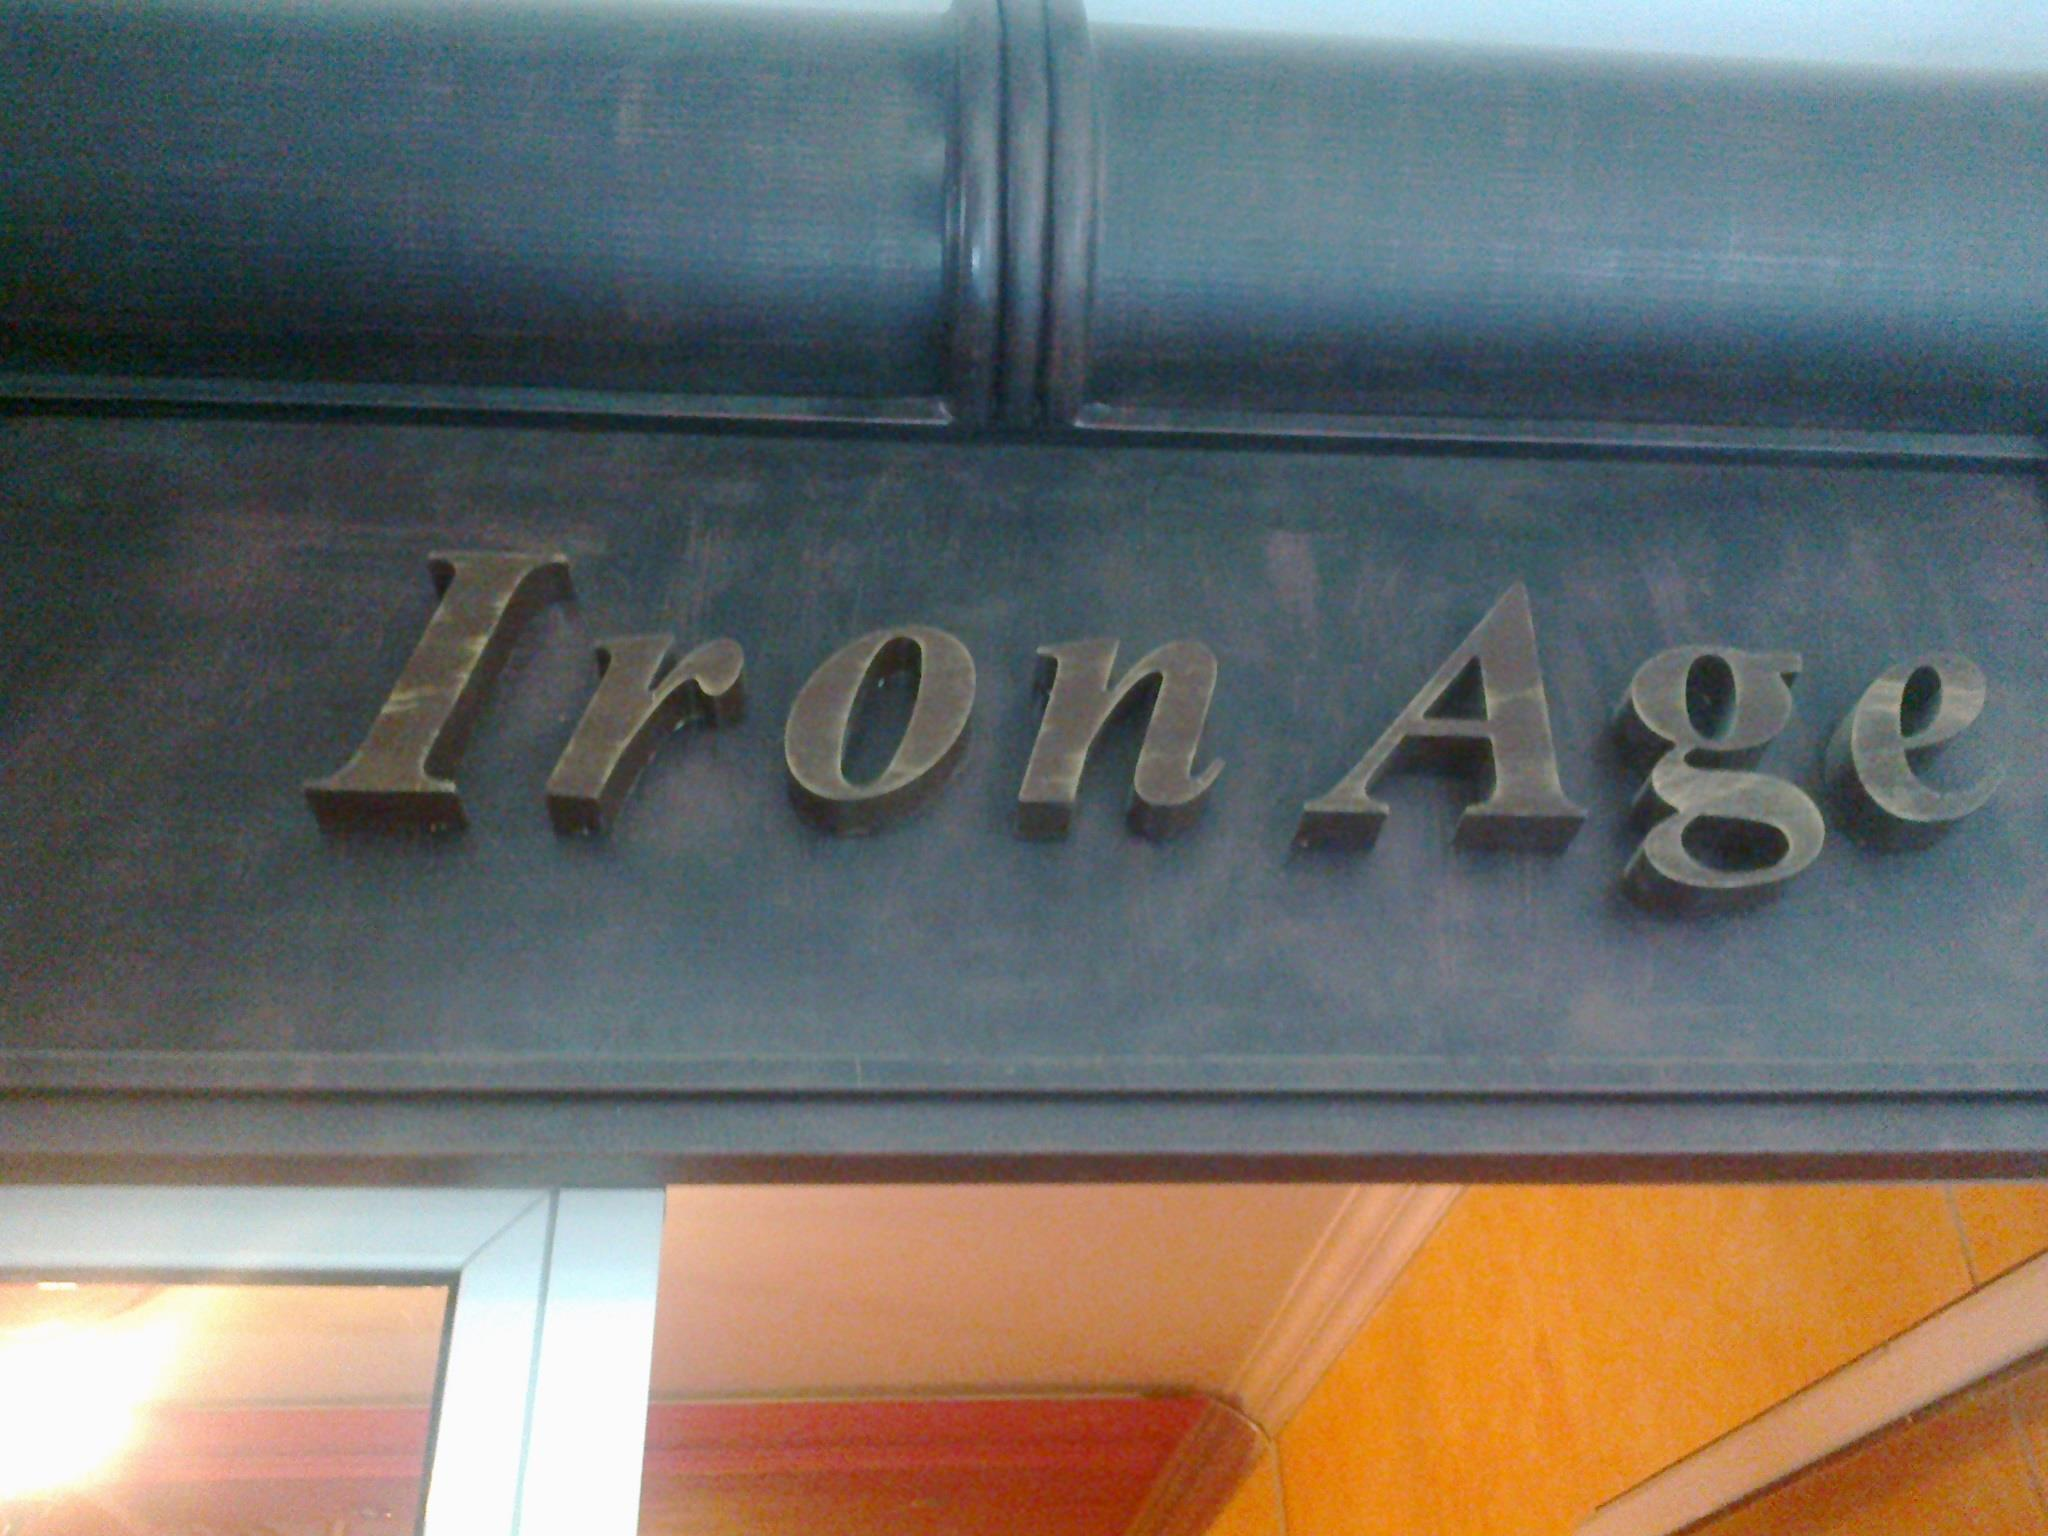 Iron Age (Artistic Metal Works)